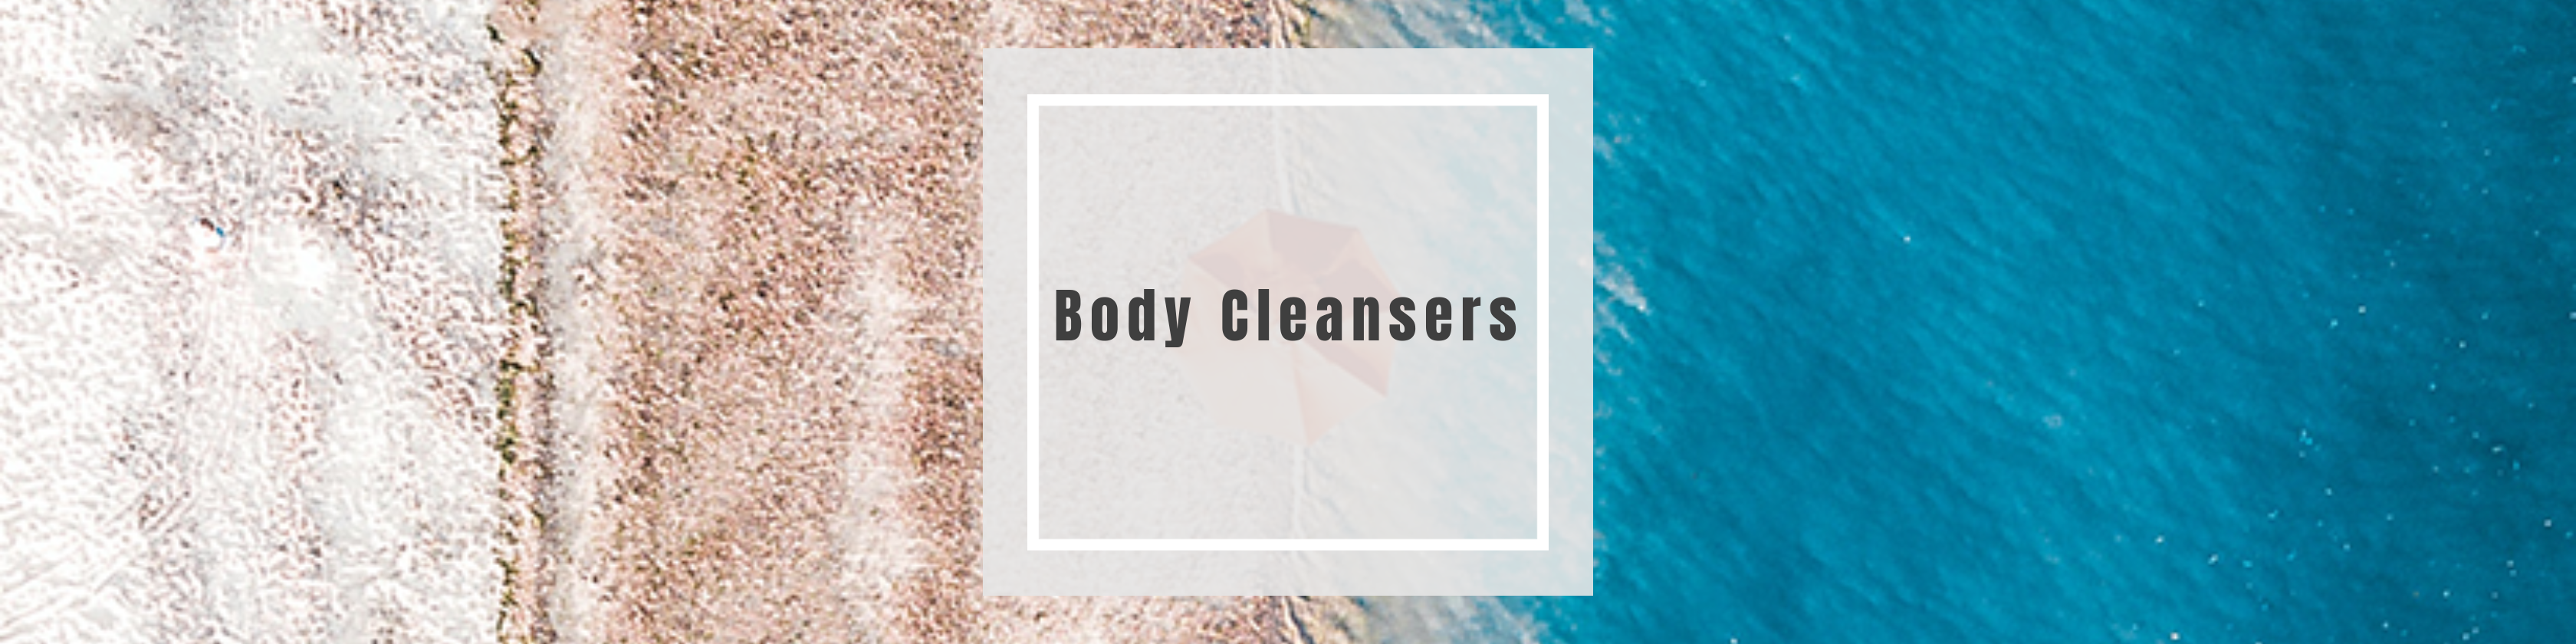 Shop Body Cleansers at Glamabox Cosmetix ☆ Body Cleansers will moisturise your skin and leave it purified, invigorated and feeling perfect!. Find all the Cosmetics you need online right here and shop now, pay later with Afterpay | Humm | Laybuy. Free Shipping*